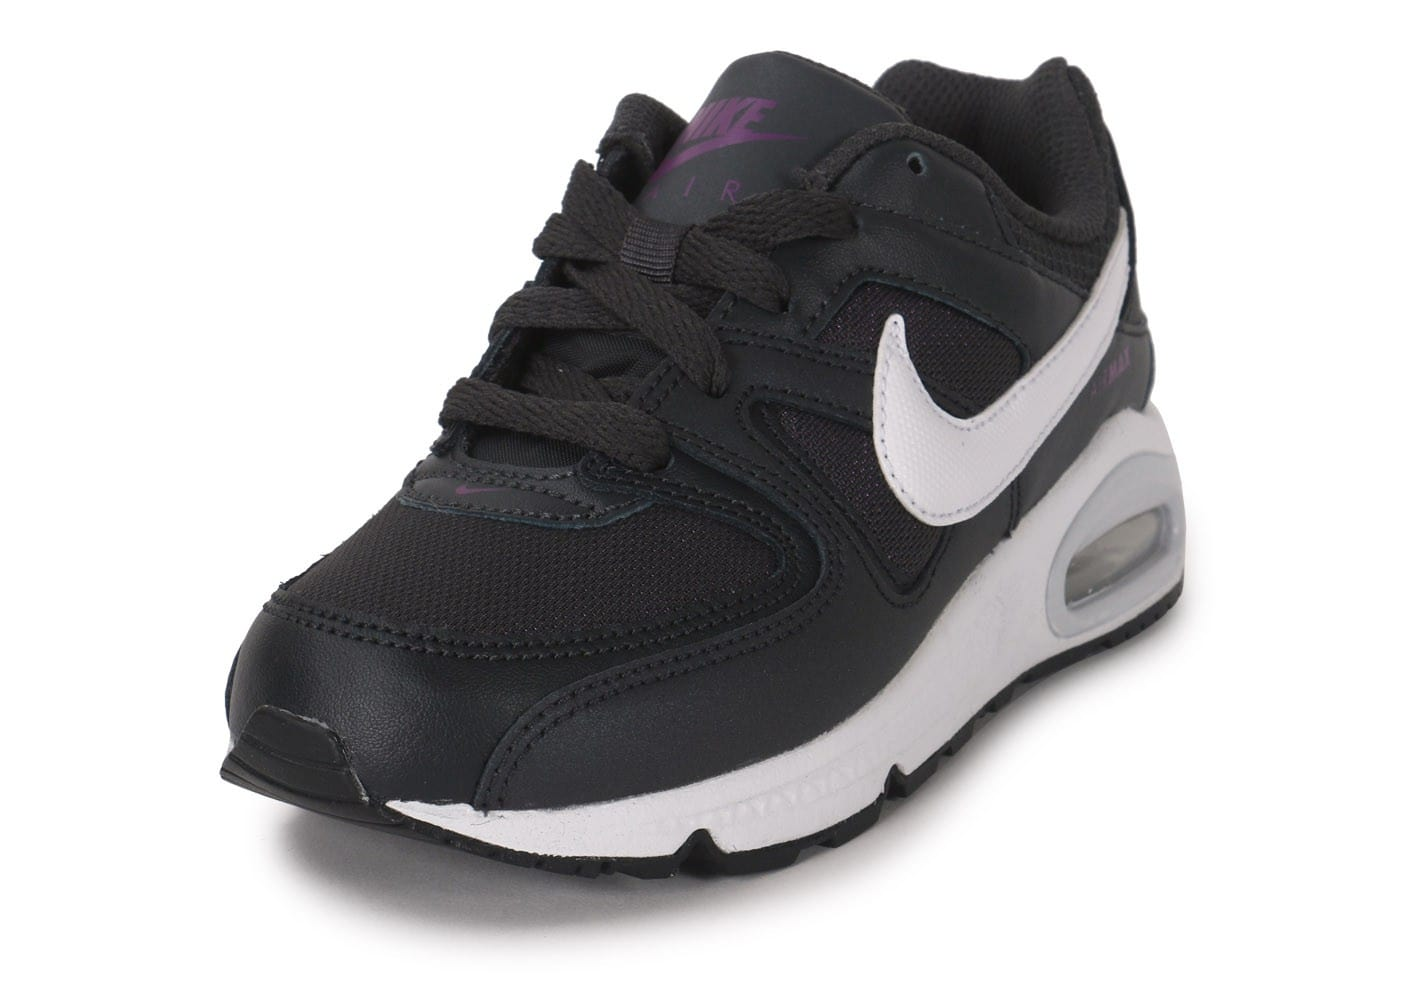 nike air max command enfant gris anthracite et violet chaussures chaussures chausport. Black Bedroom Furniture Sets. Home Design Ideas